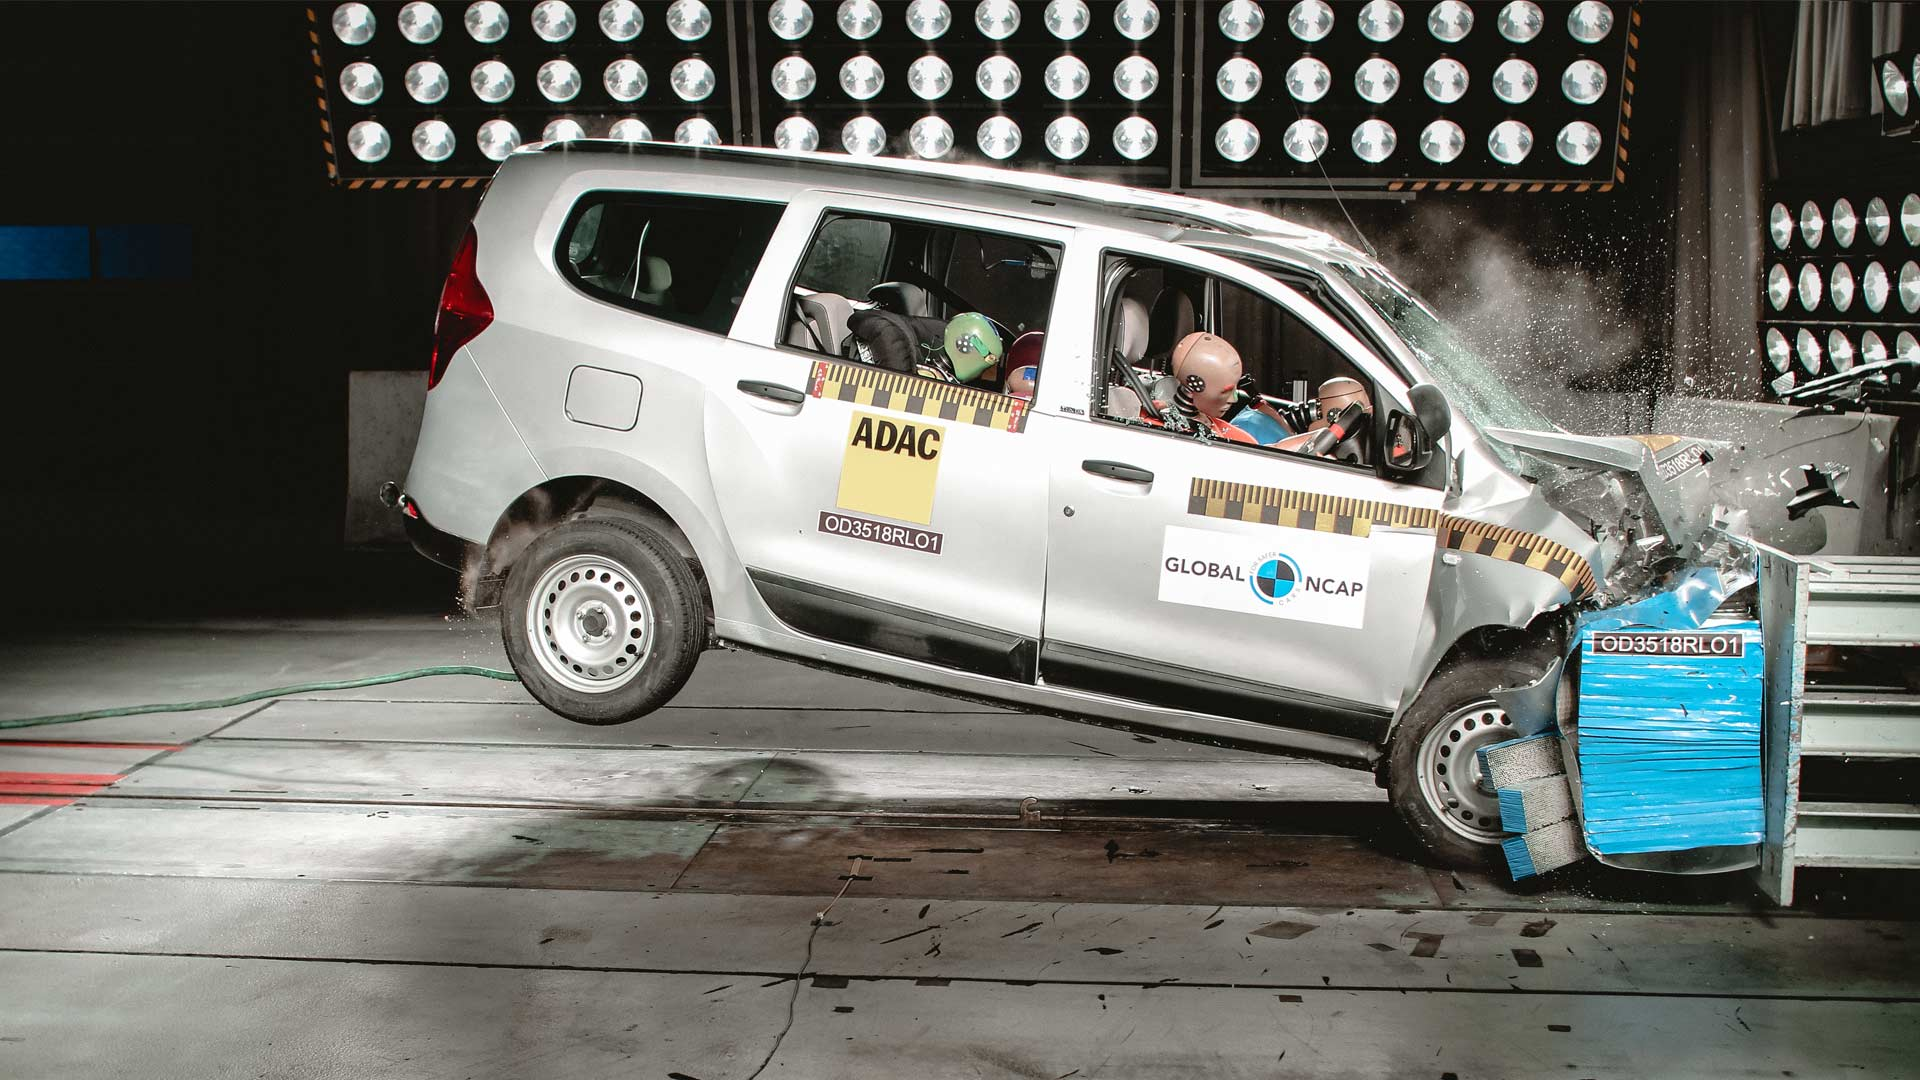 Renault-Lodgy-Global-NCAP-Crash-Test